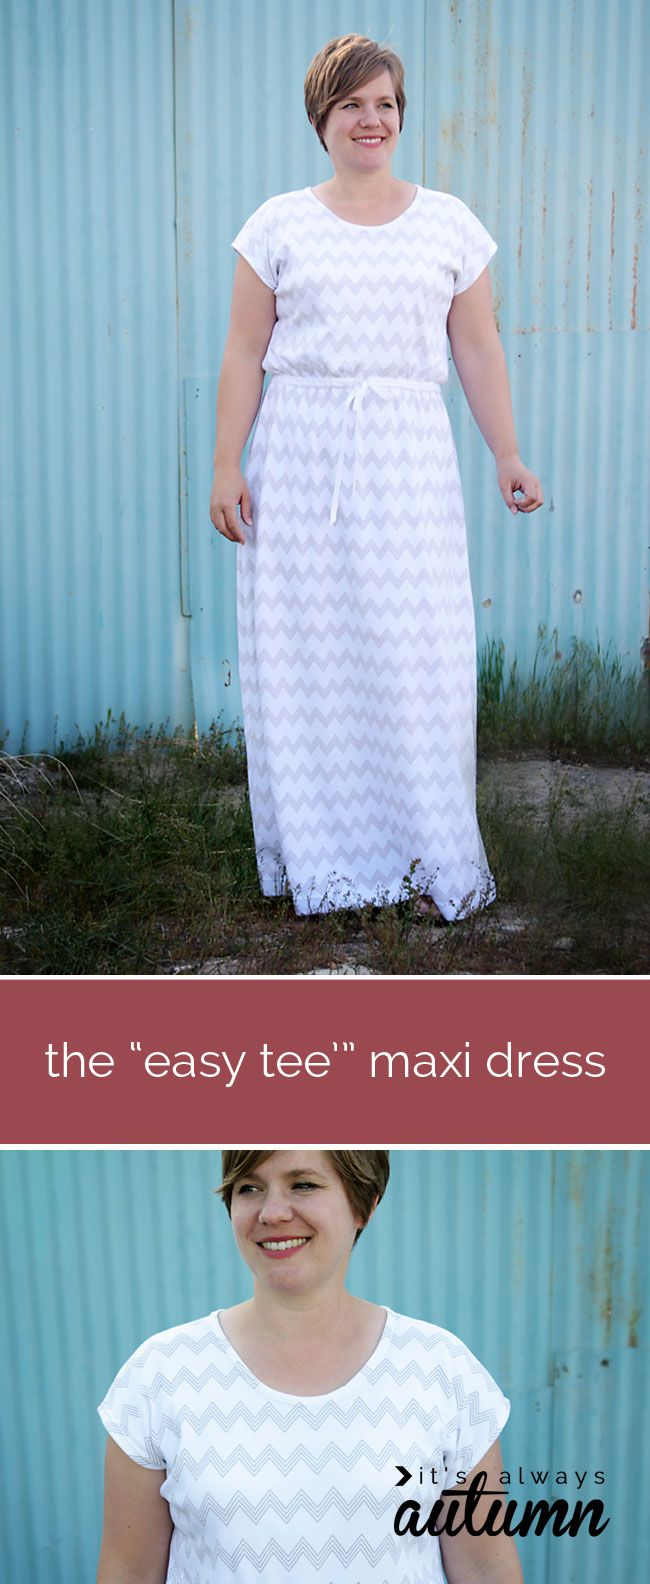 how to sew a comfy maxi dress without a pattern - make this pretty GAP-inspired #maxi #dress for $60 less than the original! super quick & easy to #sew with great step by step photo tutorial included.